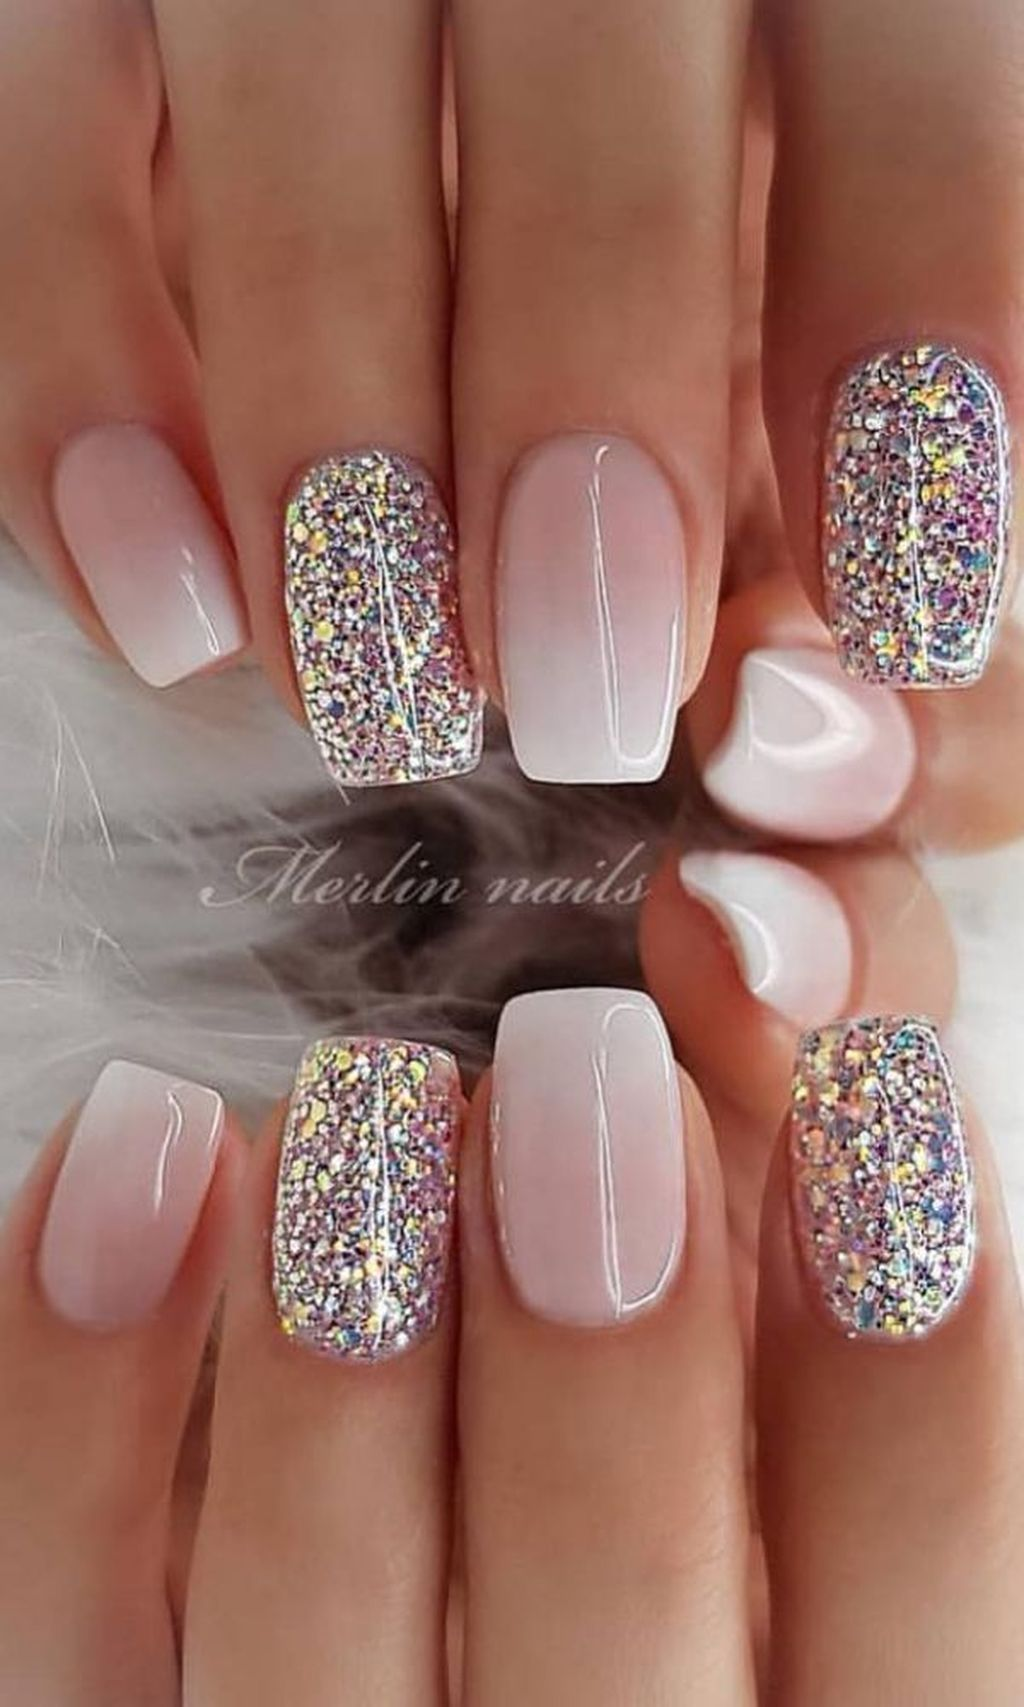 30 Amazing Spring And Summer Nails Art Designs Ideas For 2019 Cute Summer Nail Designs Nail Designs Glitter Nail Designs Summer